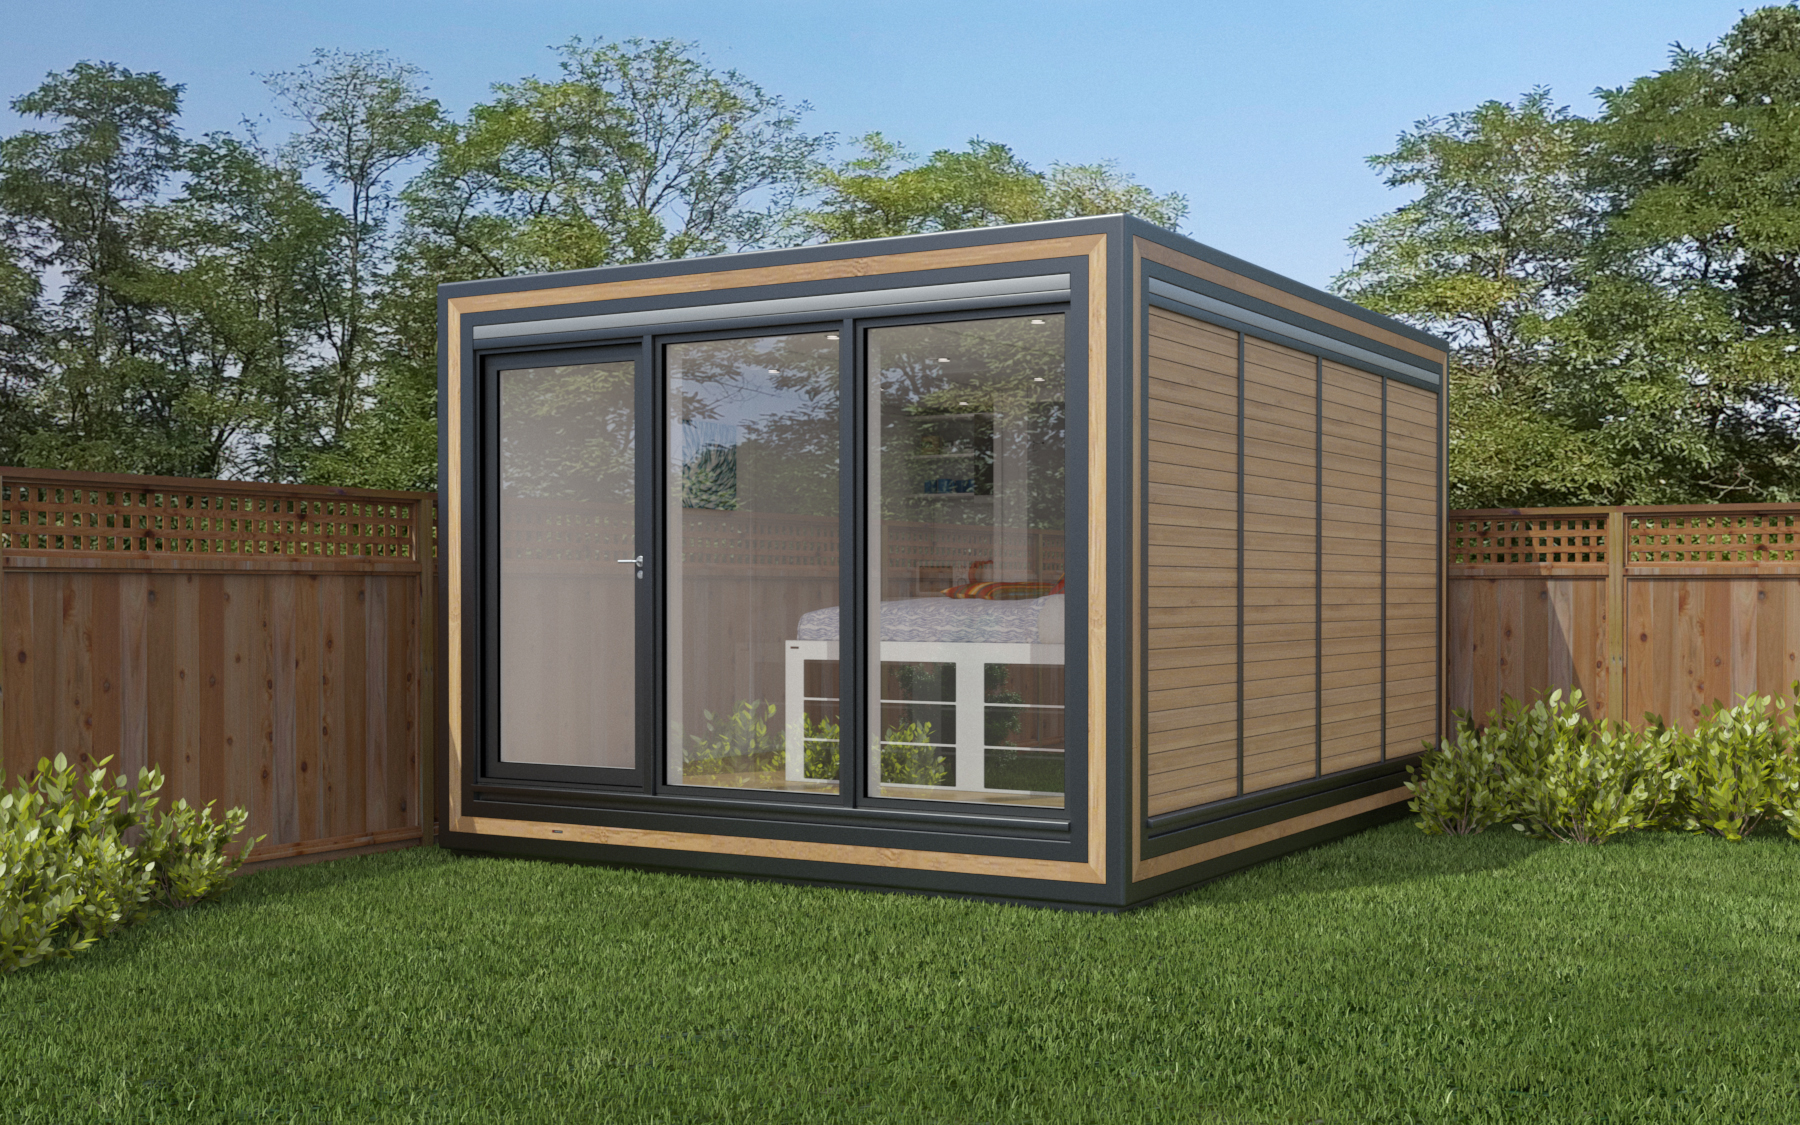 ZEDBOX 340  (3 x 4)  Internal Size: 3188 x 4259  External Size: 3658 x 4279  Bed Options: Single or Double  Kitchen Option: Micro or Premier  Wet Room Options: Yes  Portico: No  Price:  £28,000    Optional Extras    Request Zedbox Catalogue